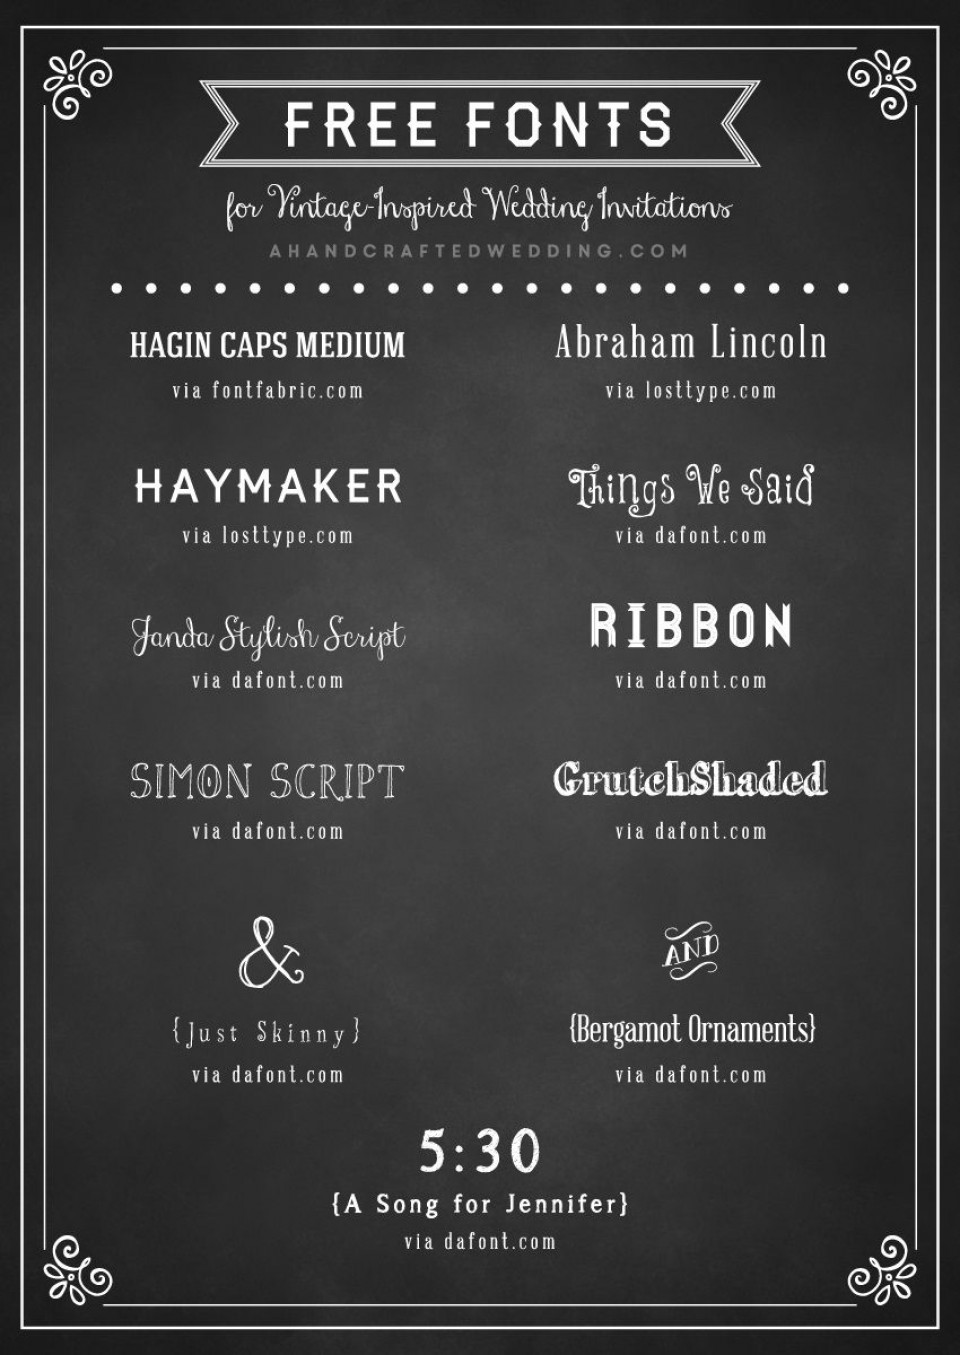 006 Unusual Chalkboard Invitation Template Free Sample  Download Birthday960